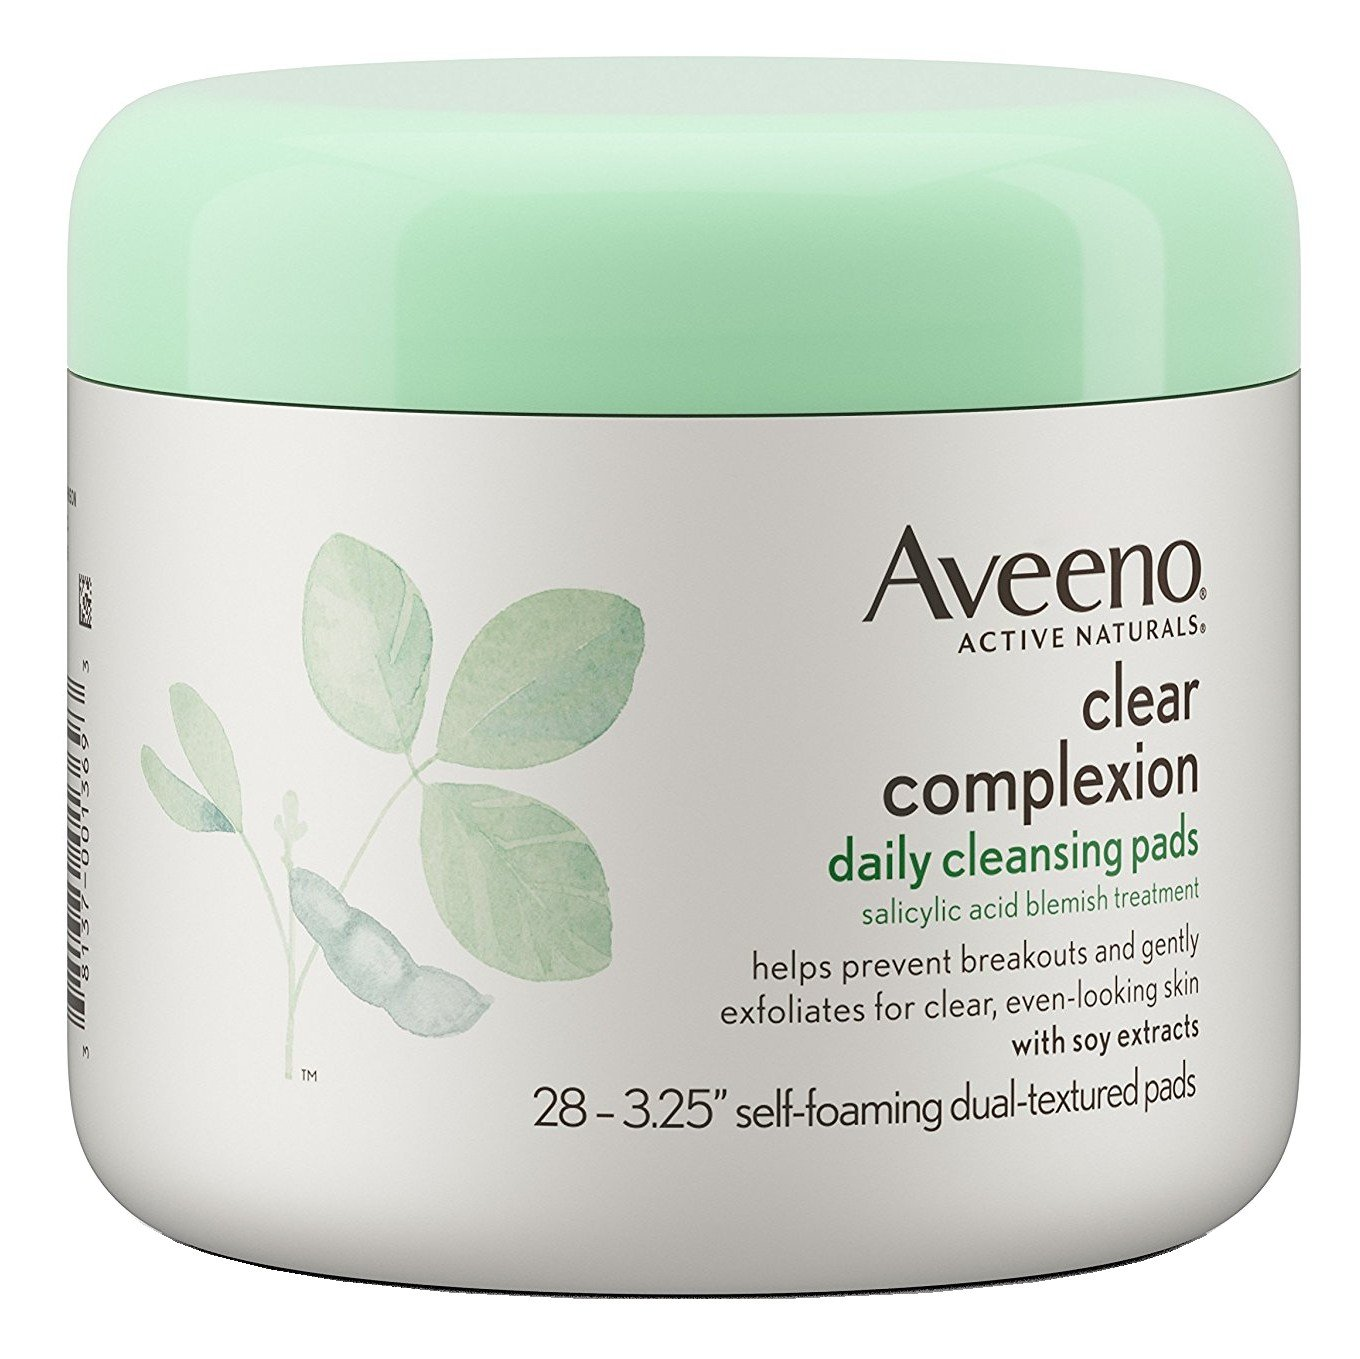 Aveeno Clear Complexion Daily Facial Cleansing Pads with Salicylic Acid Acne Treatment, 28 ct (Pack of 6)